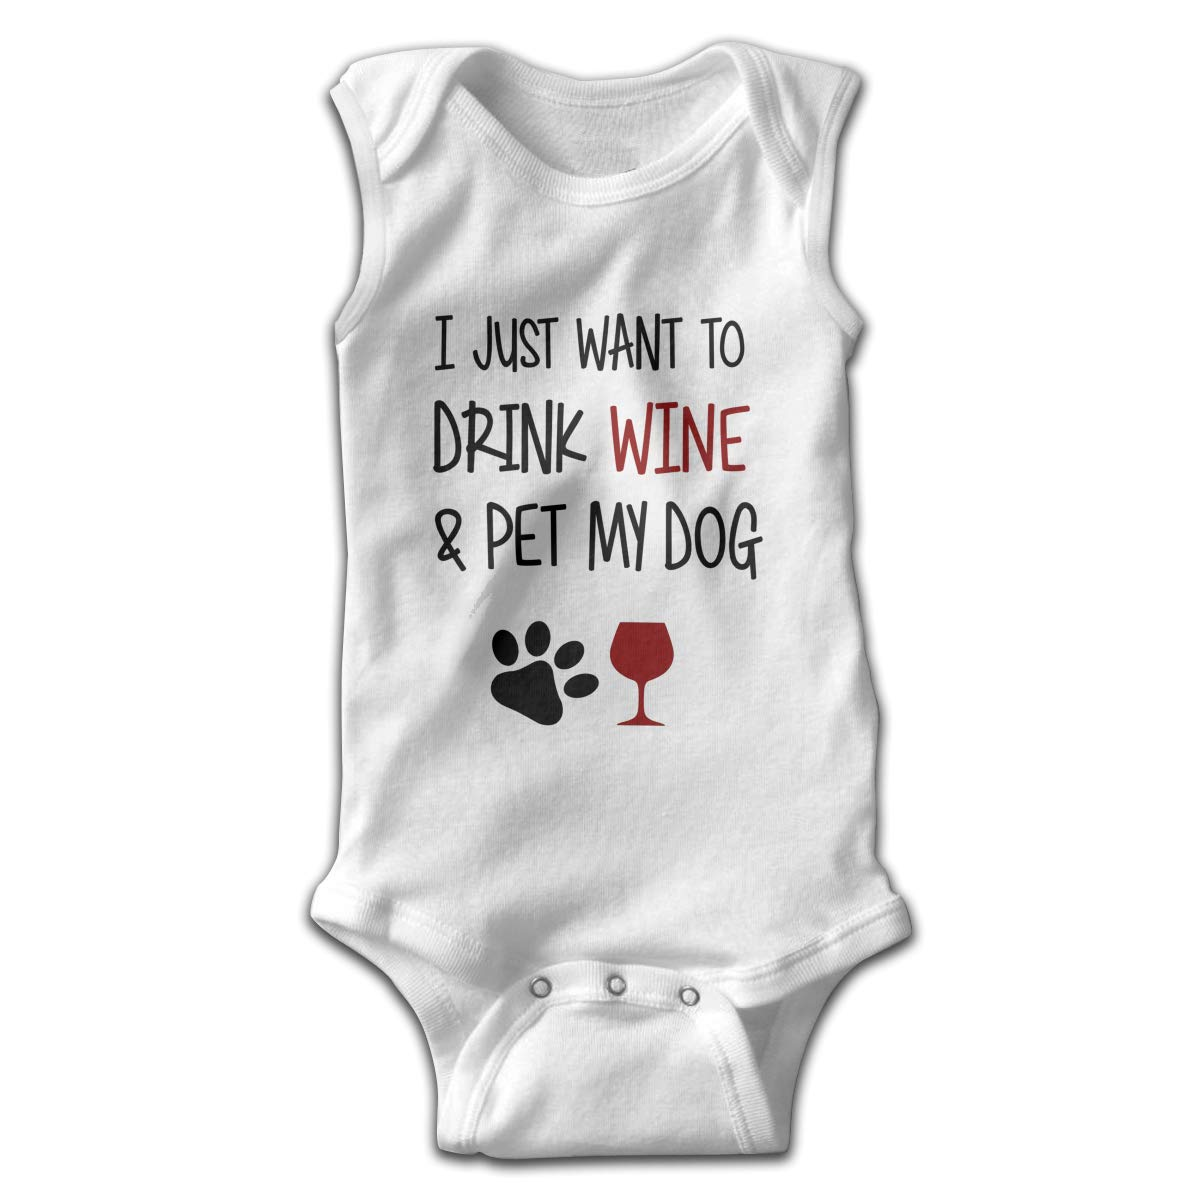 Efbj Infant Baby Girls Rompers Sleeveless Cotton Jumpsuit,I Just Want to Drink Wine and Pet My Dog Bodysuit Spring Pajamas